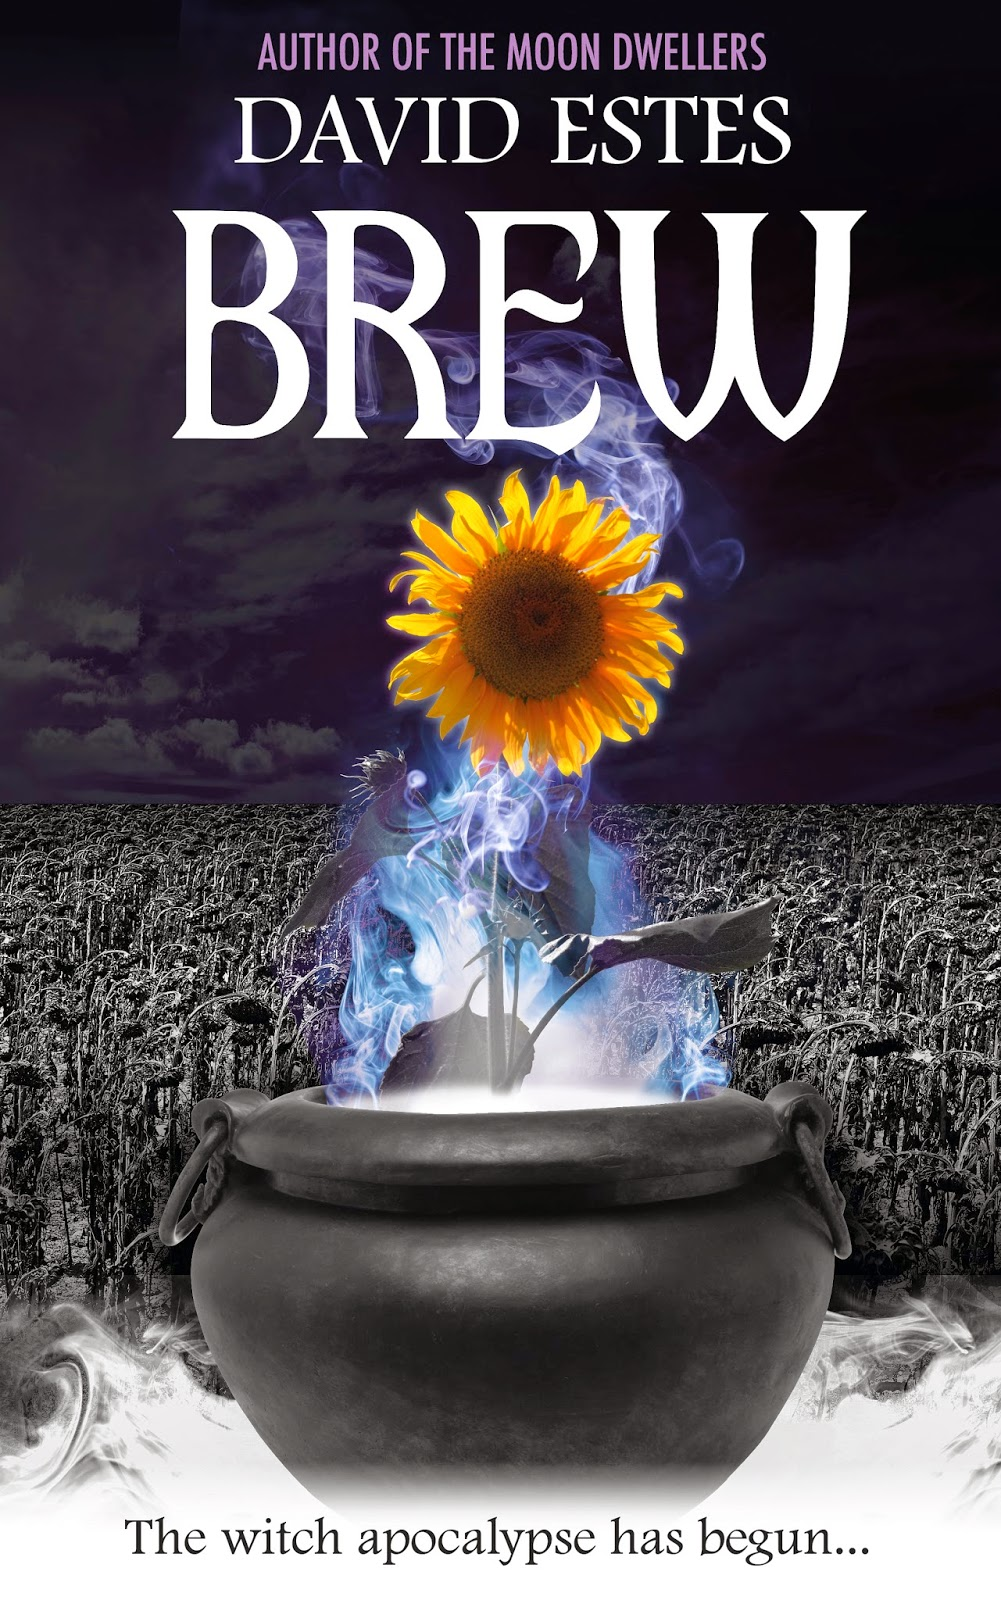 https://www.goodreads.com/book/show/18050390-brew?from_search=true